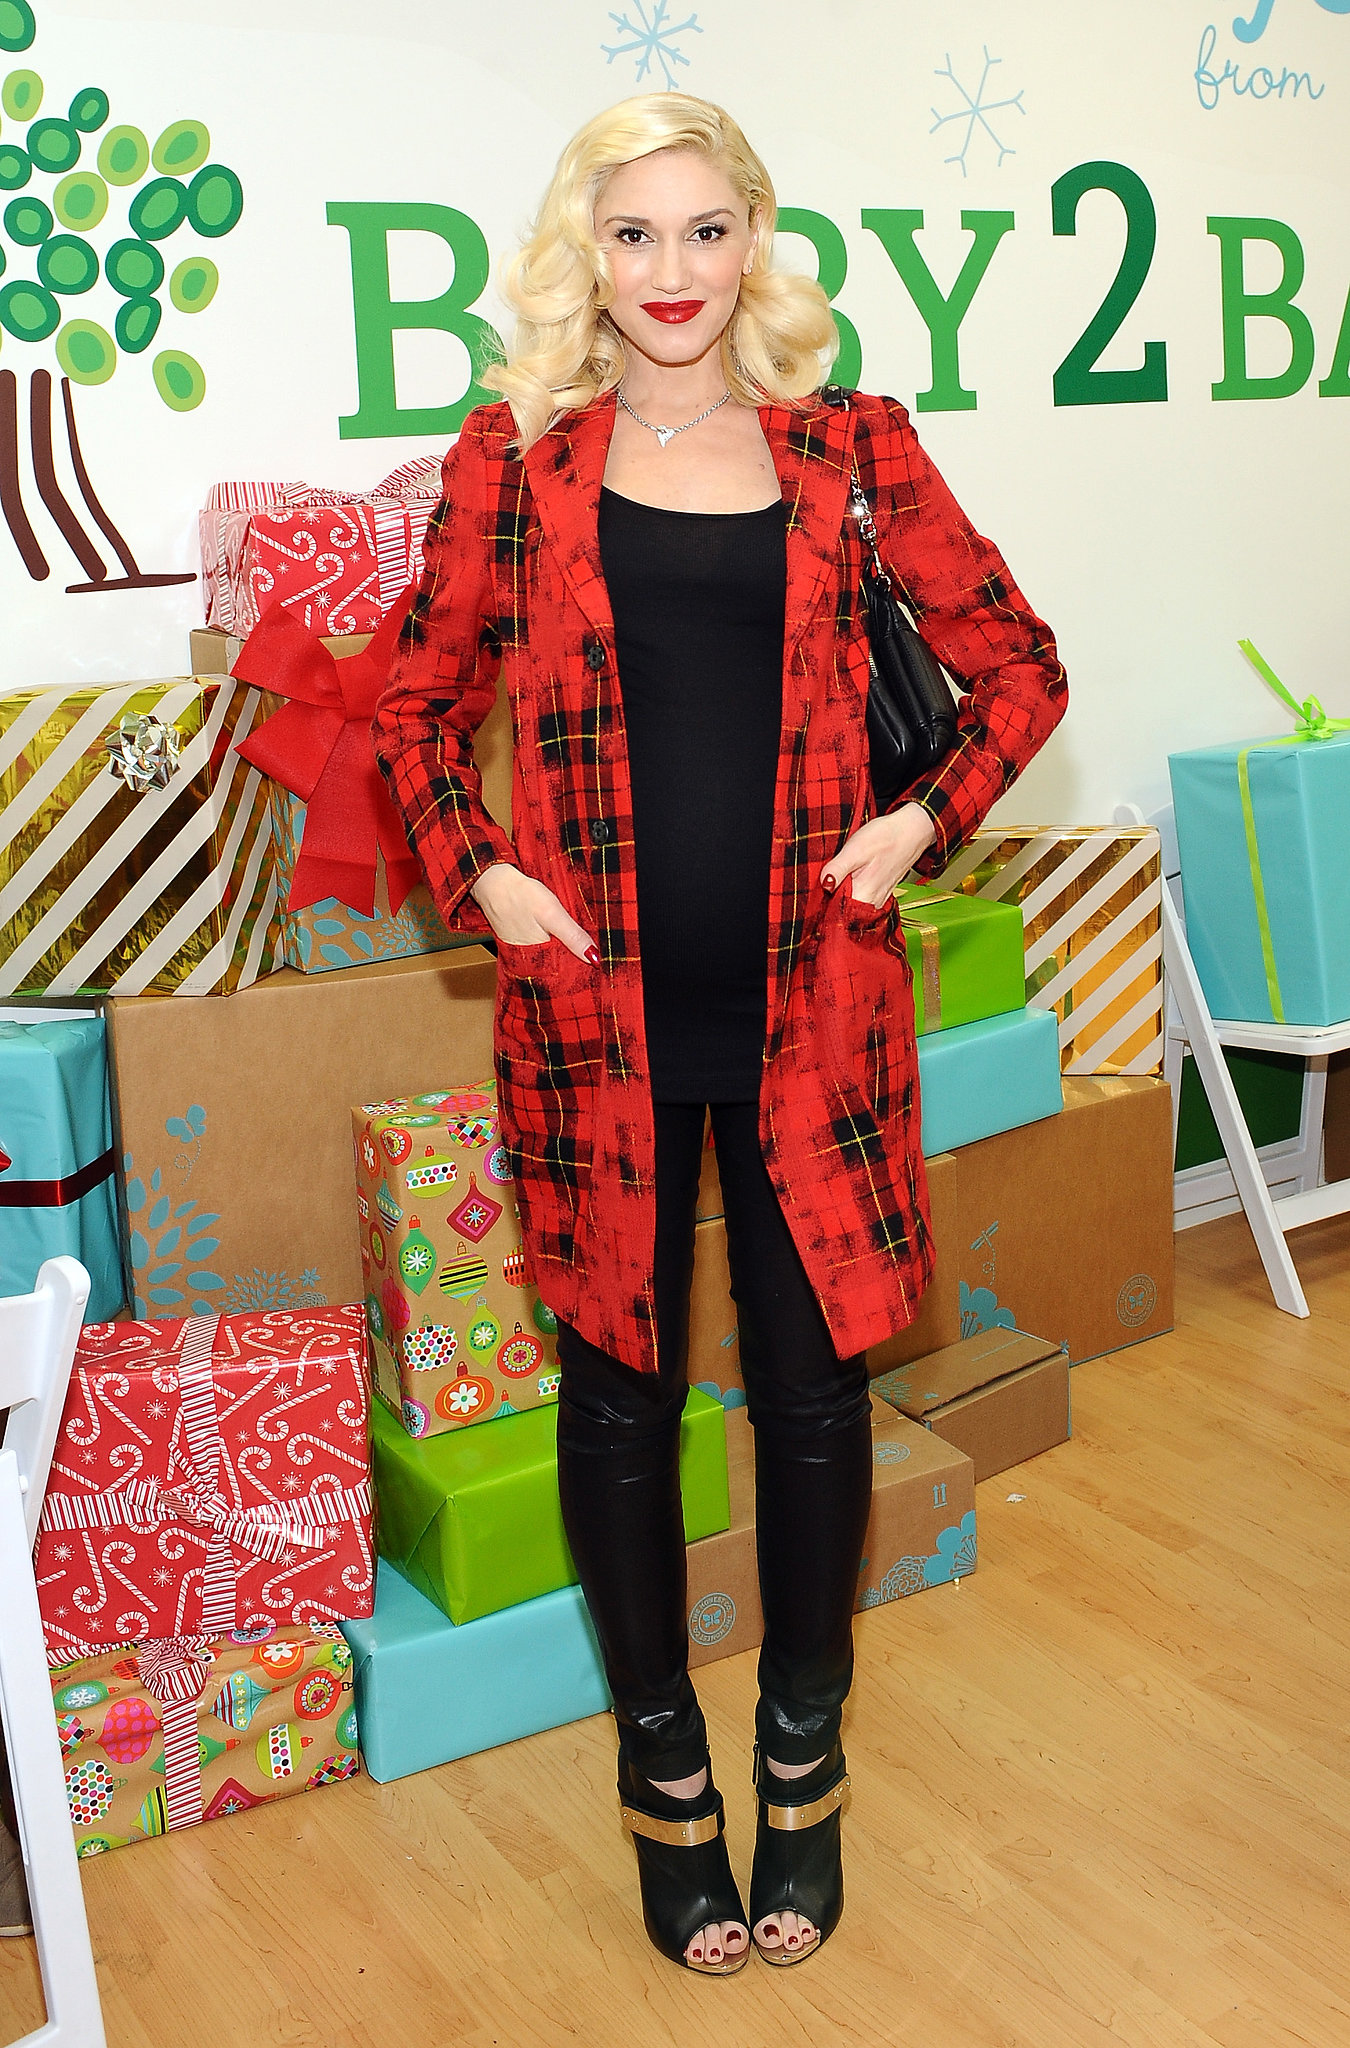 When you're Gwen, a simple trench will never do. Instead, she used her red plaid coat to get into the spirit during a holiday party out in LA.